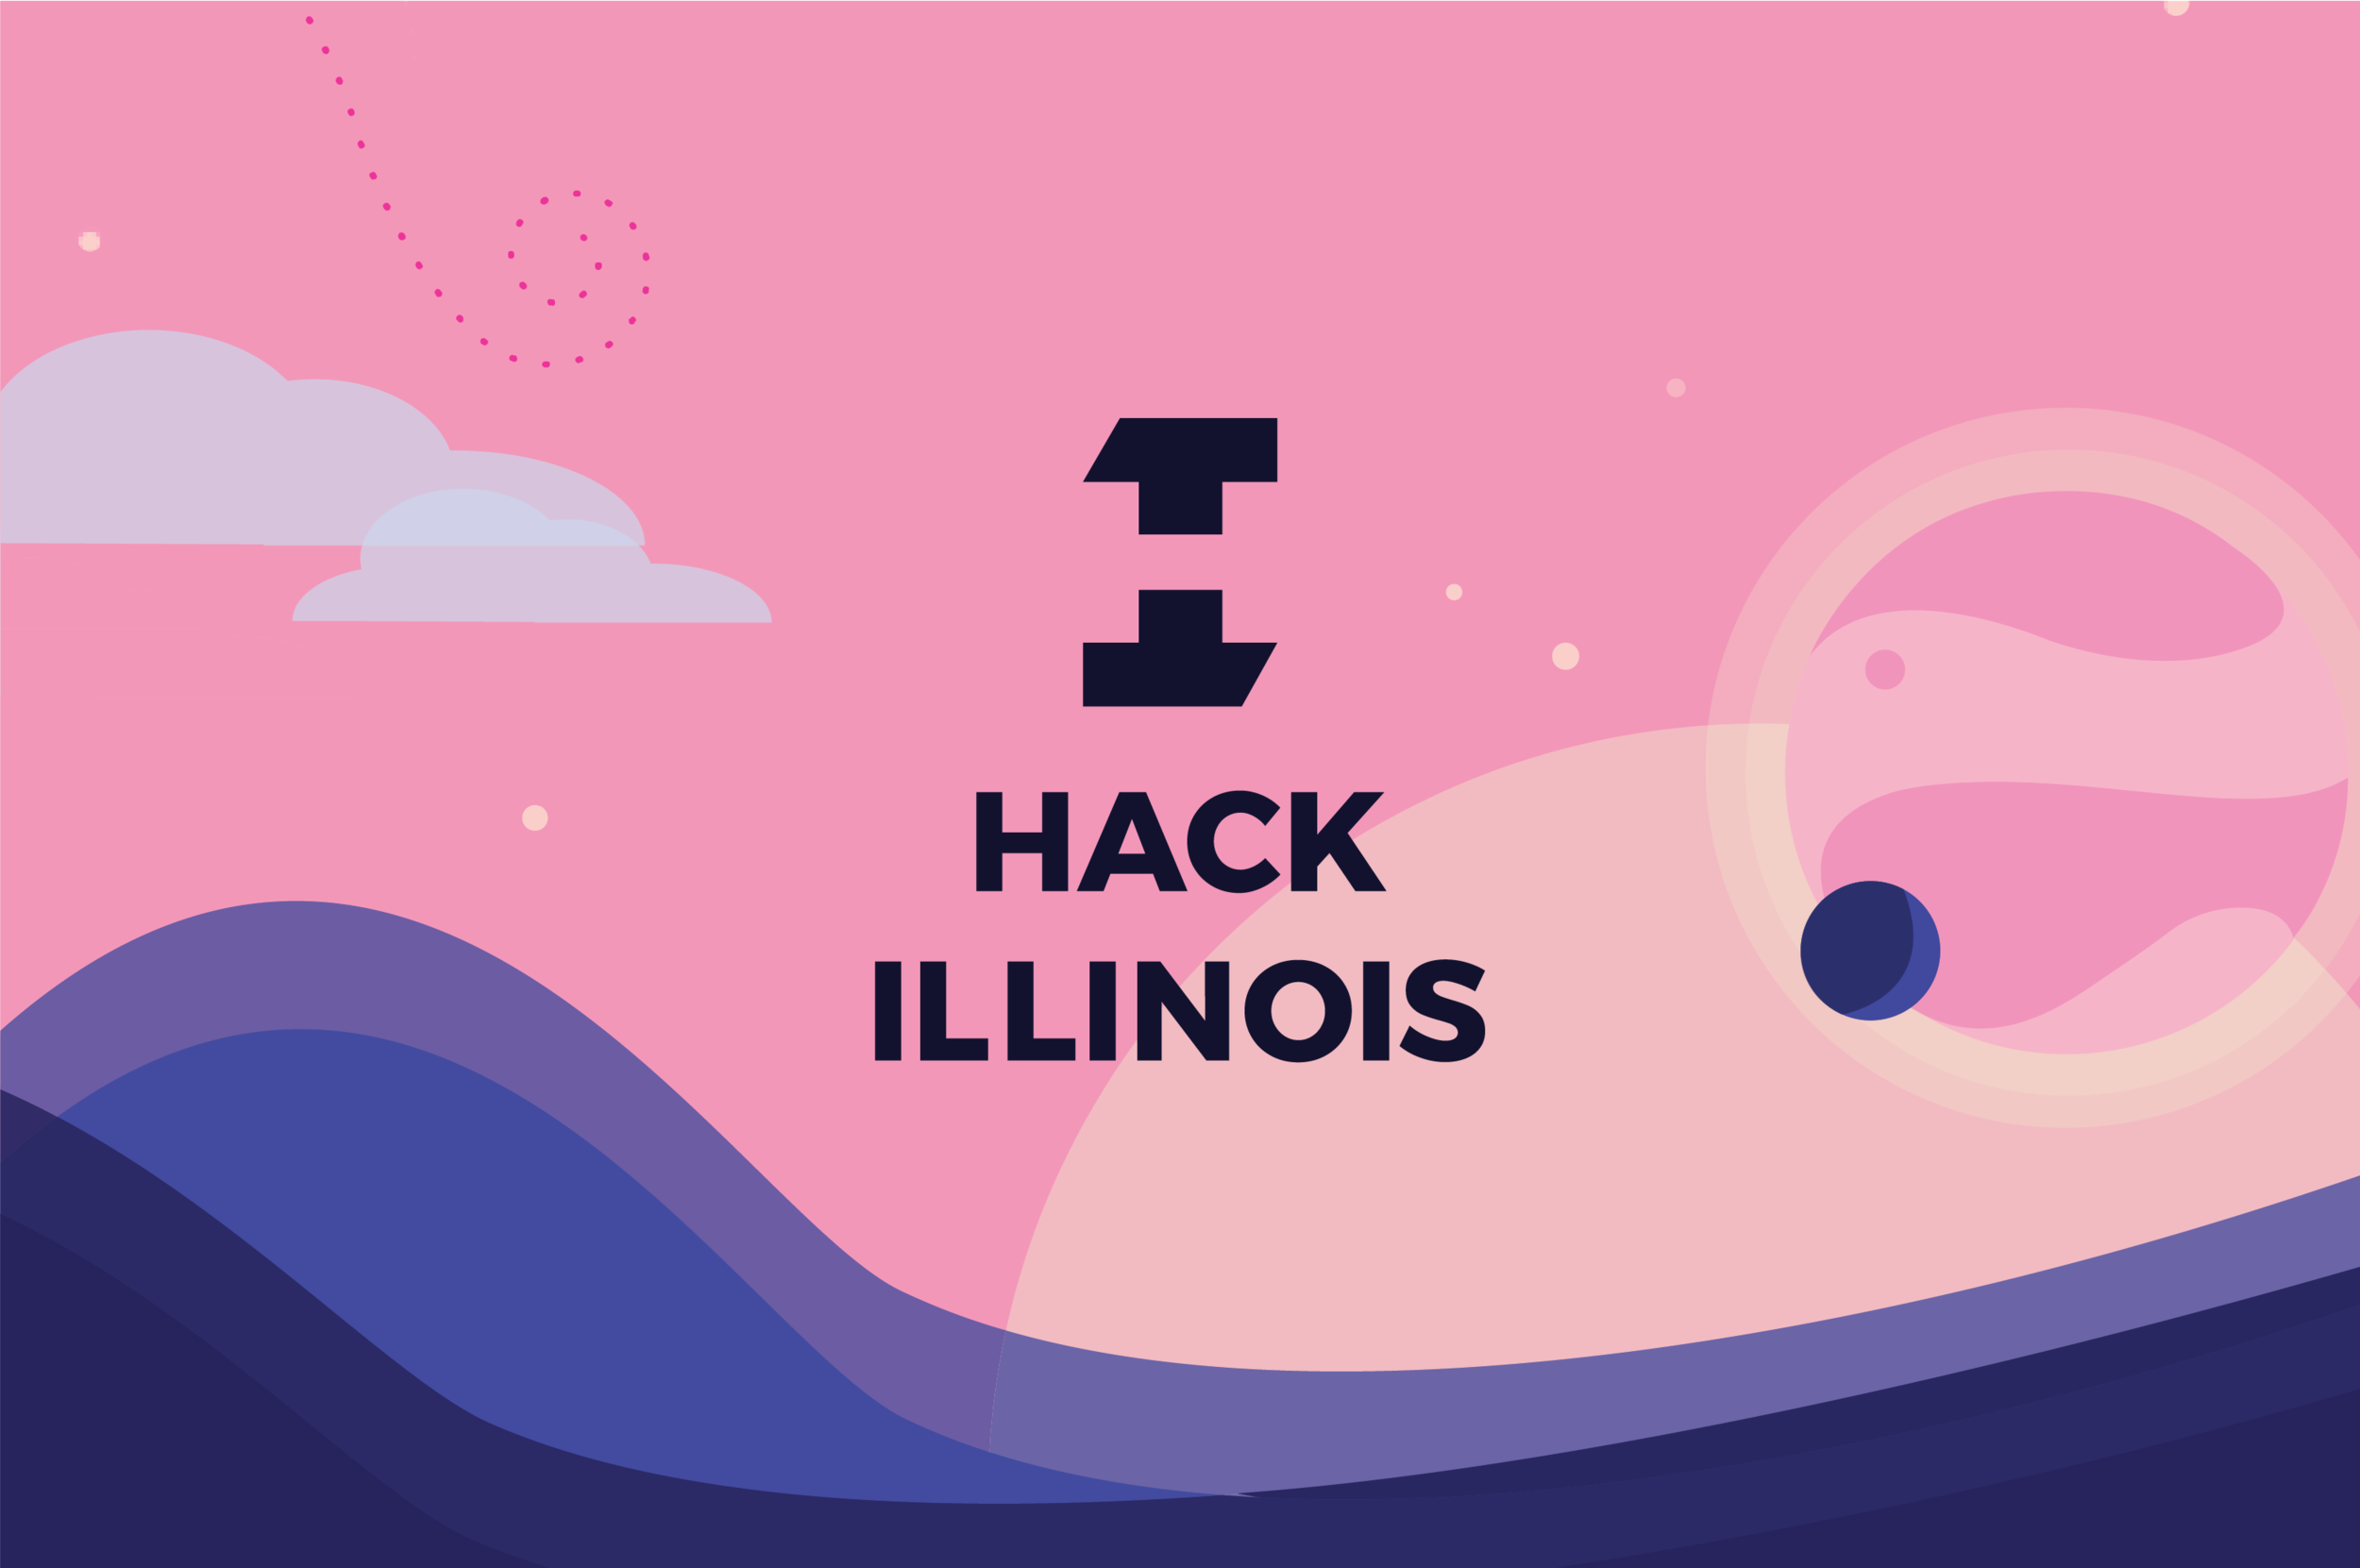 hackillinois-01.png